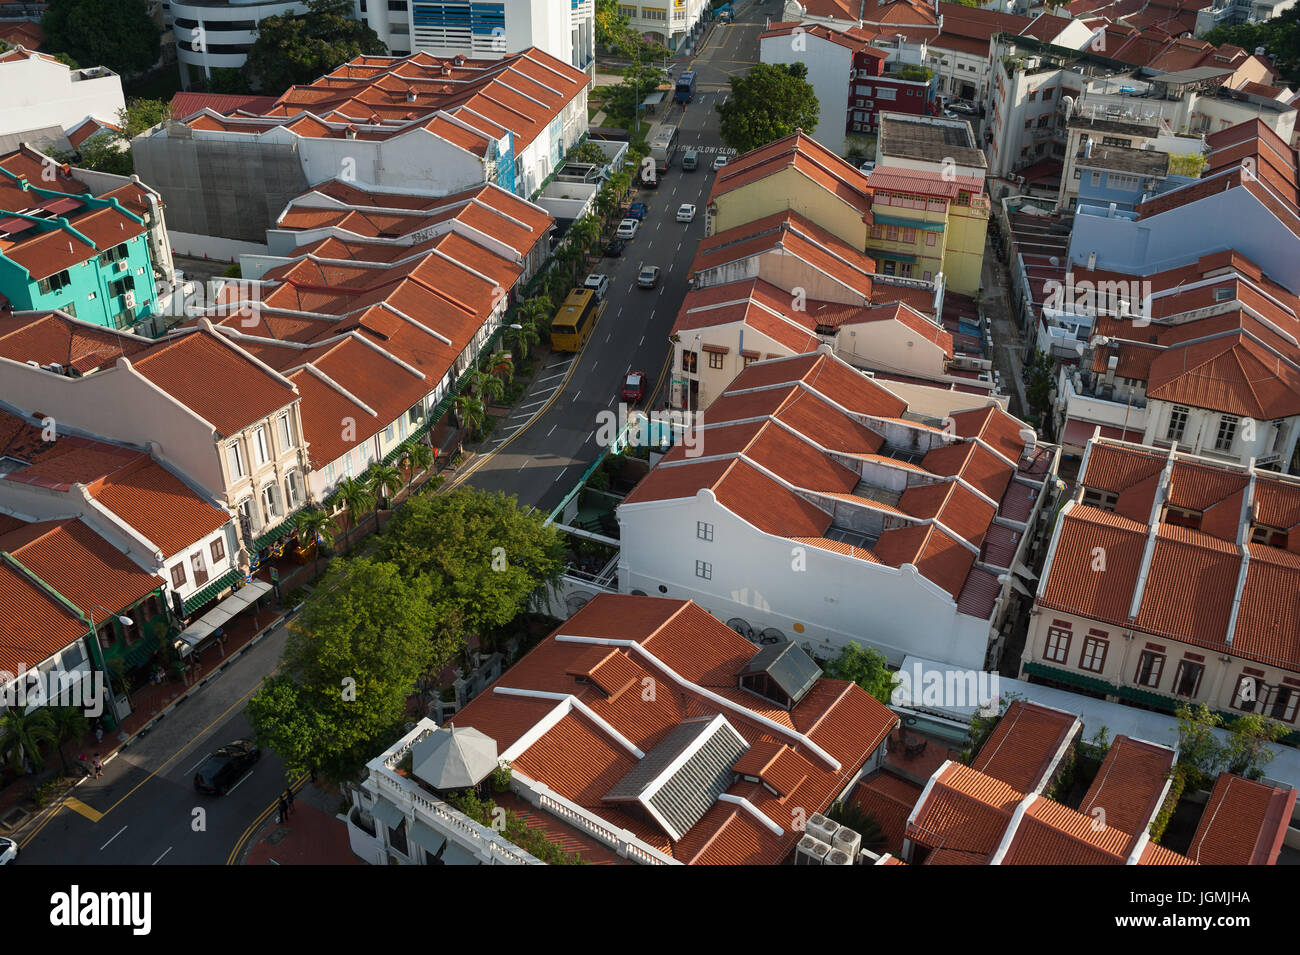 07.07.2017, Singapore, Republic of Singapore, Asia - A view of traditional shop houses in Singapore's Chinatown - Stock Image